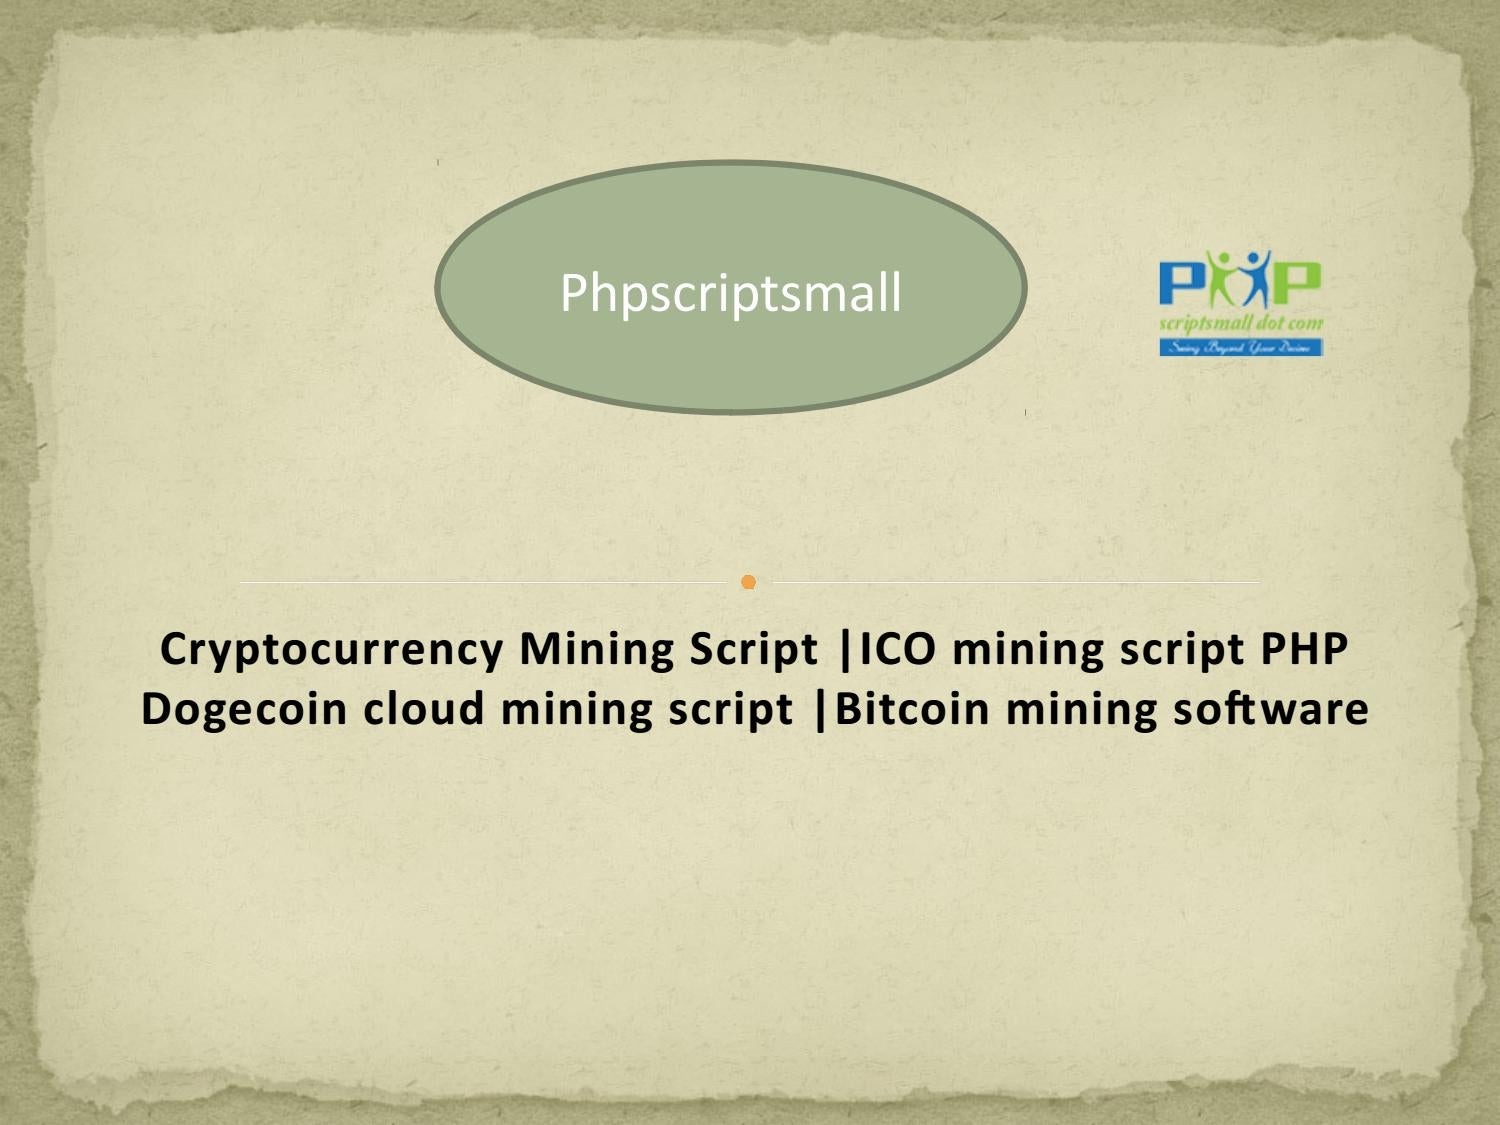 Dogecoin Cloud Mining Script Cryptocurrency Mining Script By Jamessuresh12 Issuu